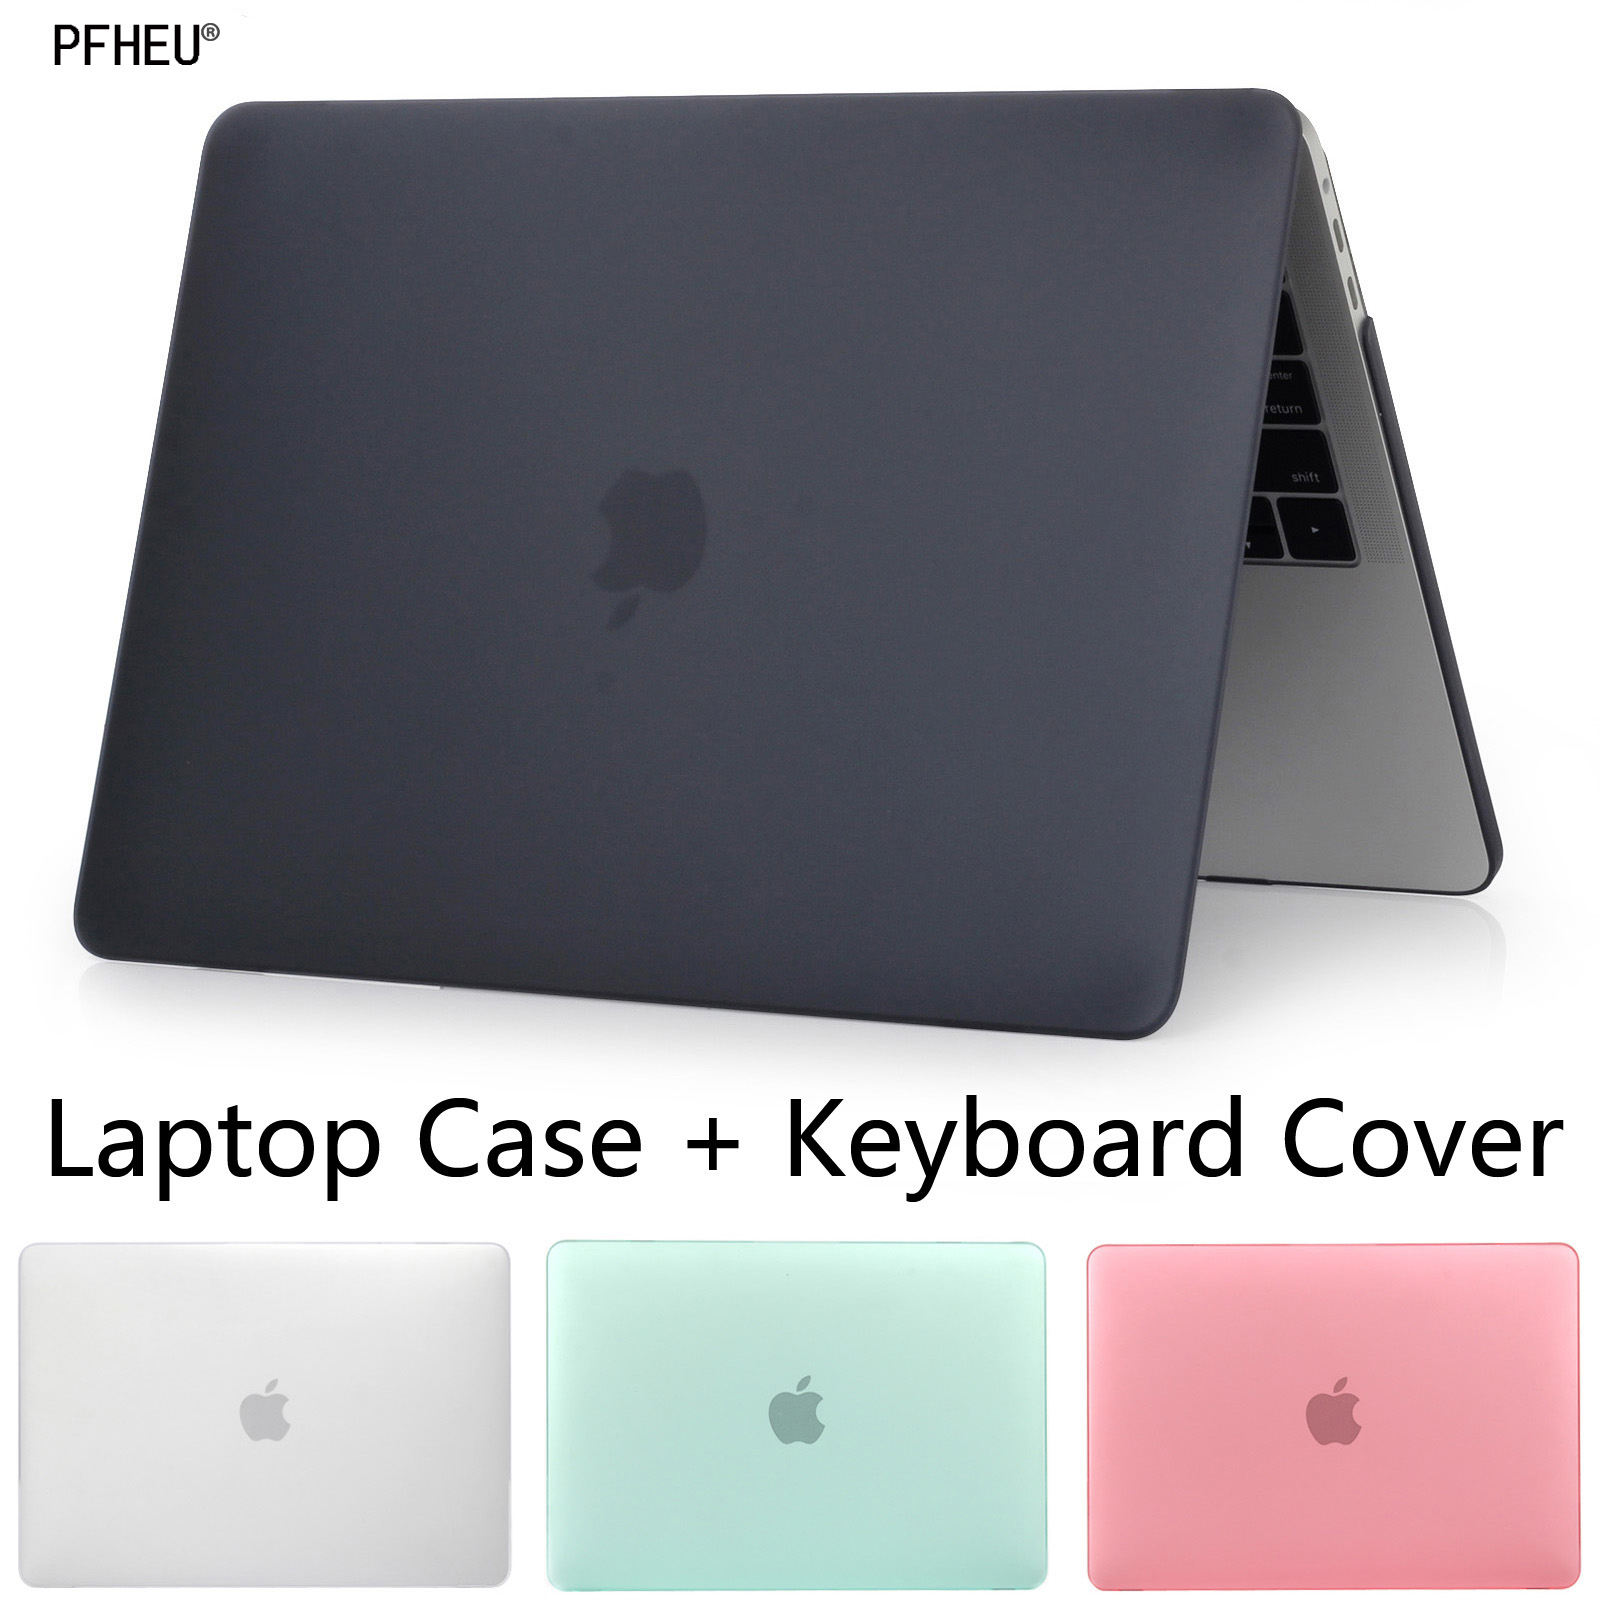 PFHEU HOT Sell laptop Case For Apple macbook Air Pro Retina 11 12 13 15 For Mac book 13.3 inch with Touch Bar +Keyboard Cover baby care suprim